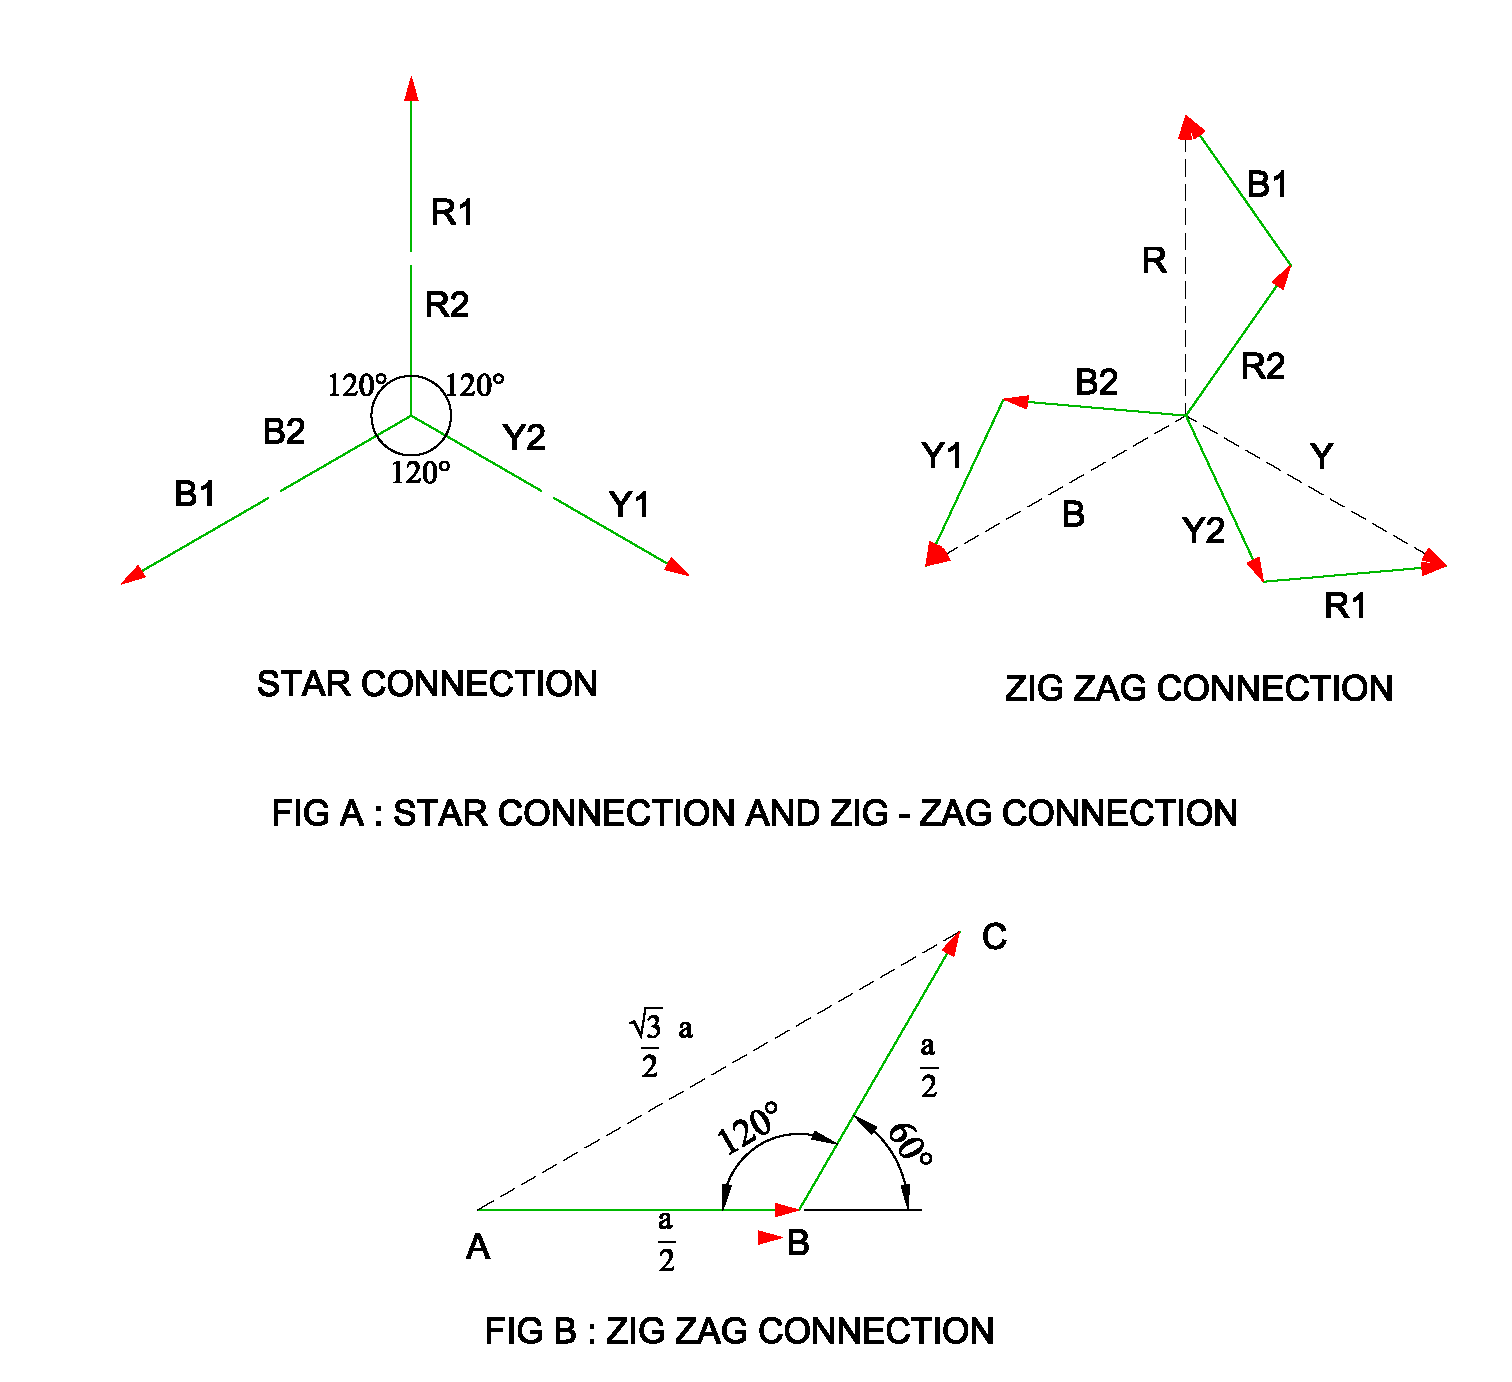 medium resolution of fig a shows star connection in which each phase consists of two windings in order to convert this winding into zig zag connection